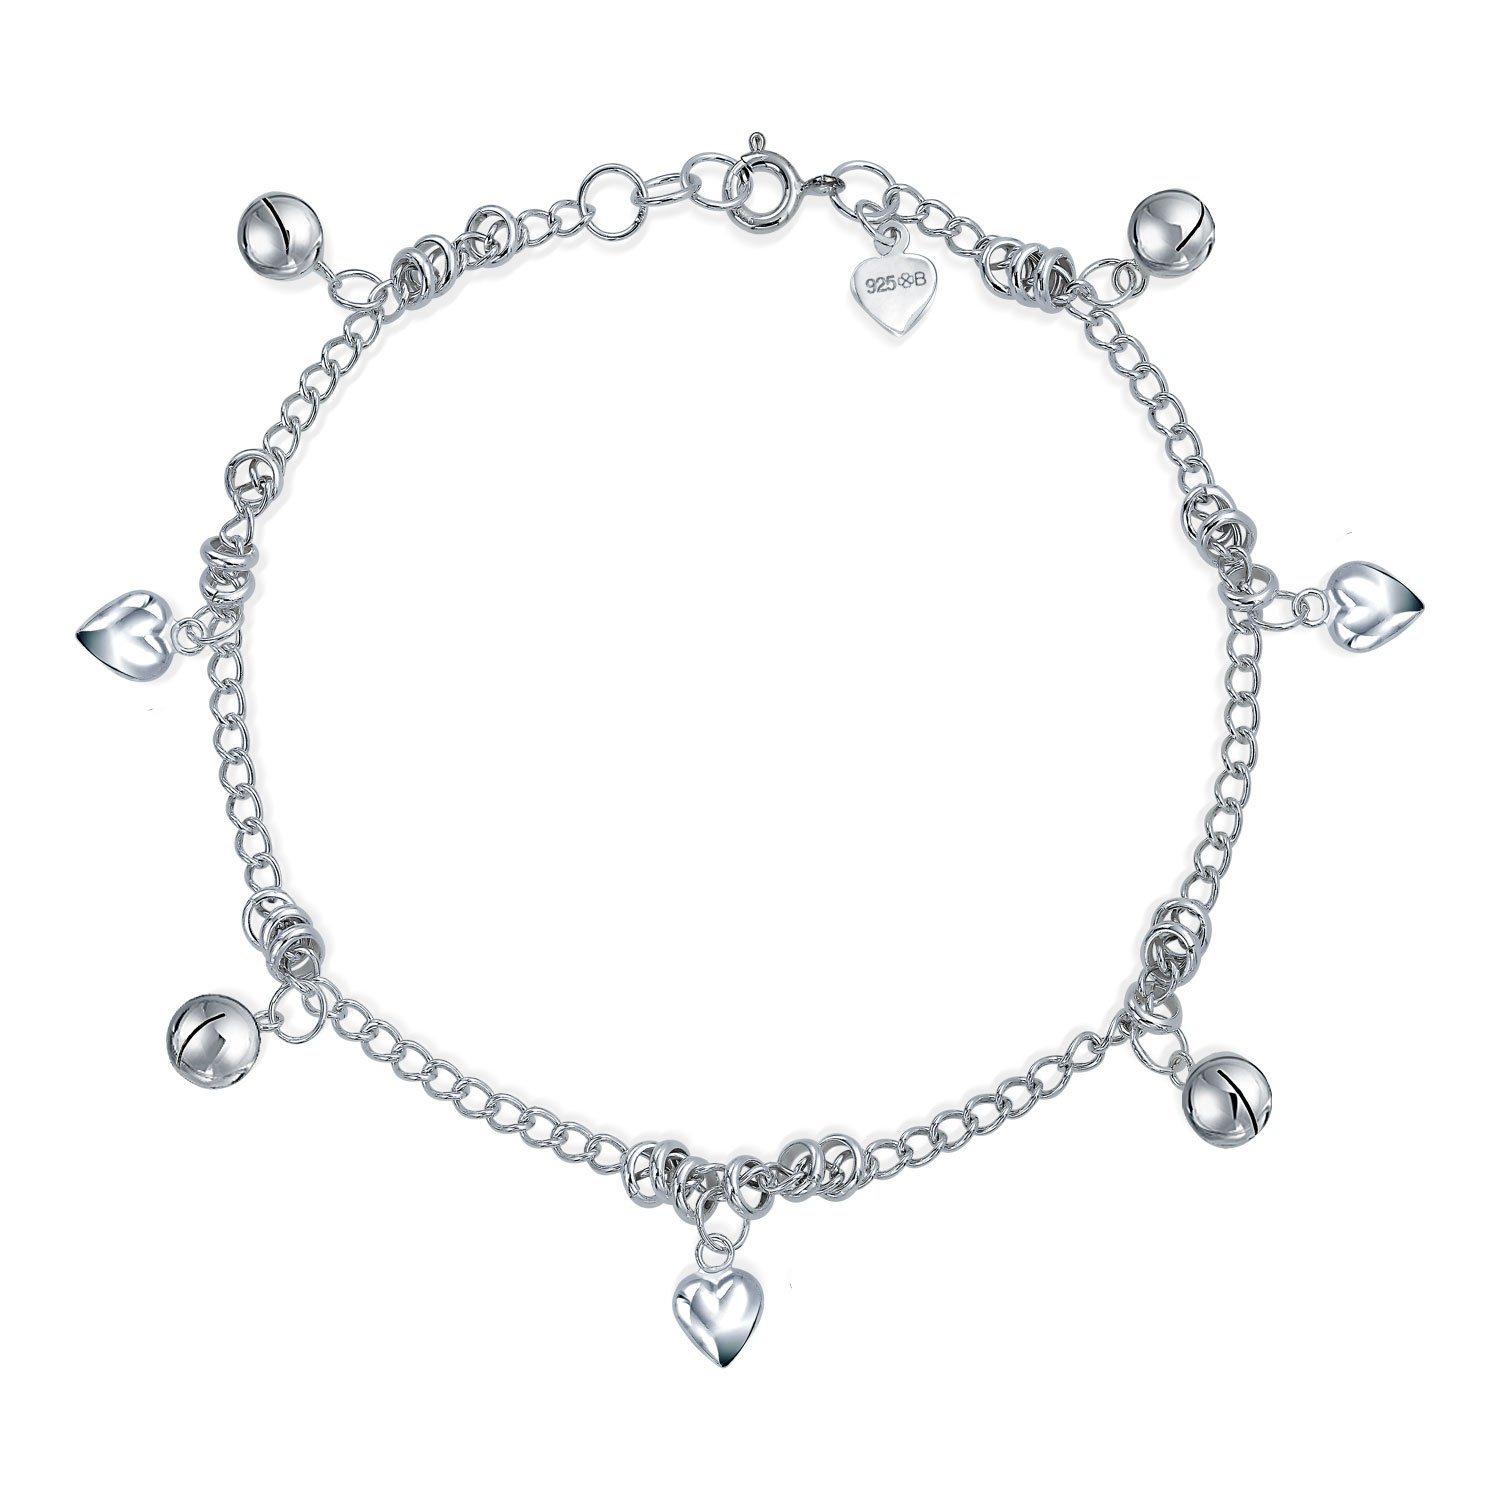 Multi Jingle Bells And Hearts Dangle Charms Anklet Pattilu India Ankle Bracelet For Women 925 Sterling Silver 9.5 Inch